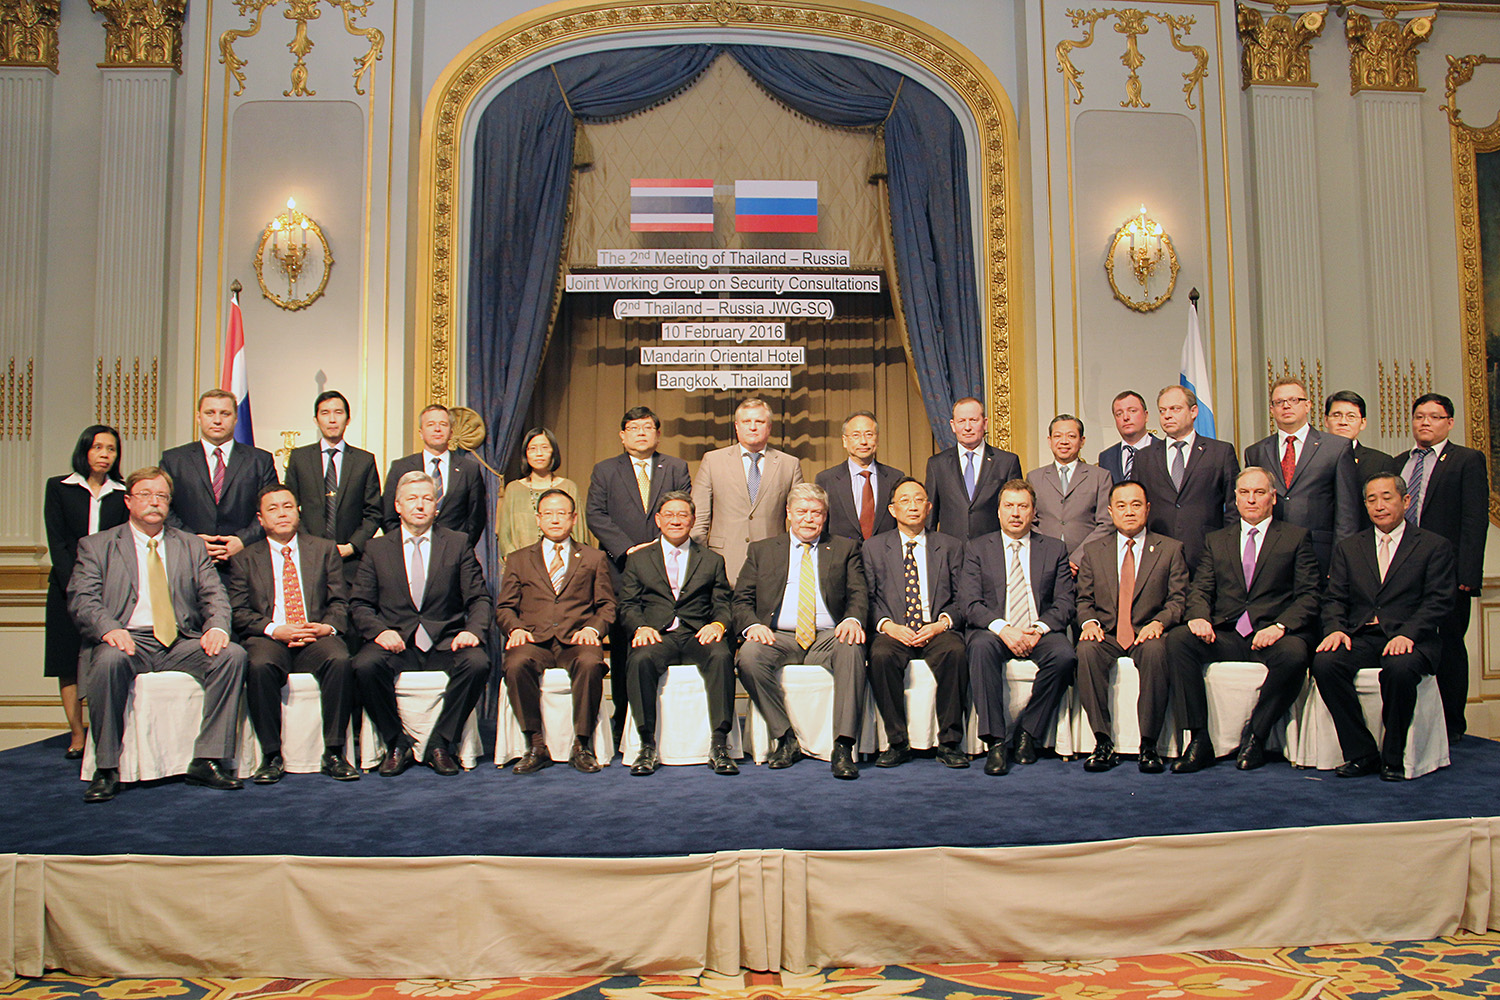 The Russian Federation The Council 65